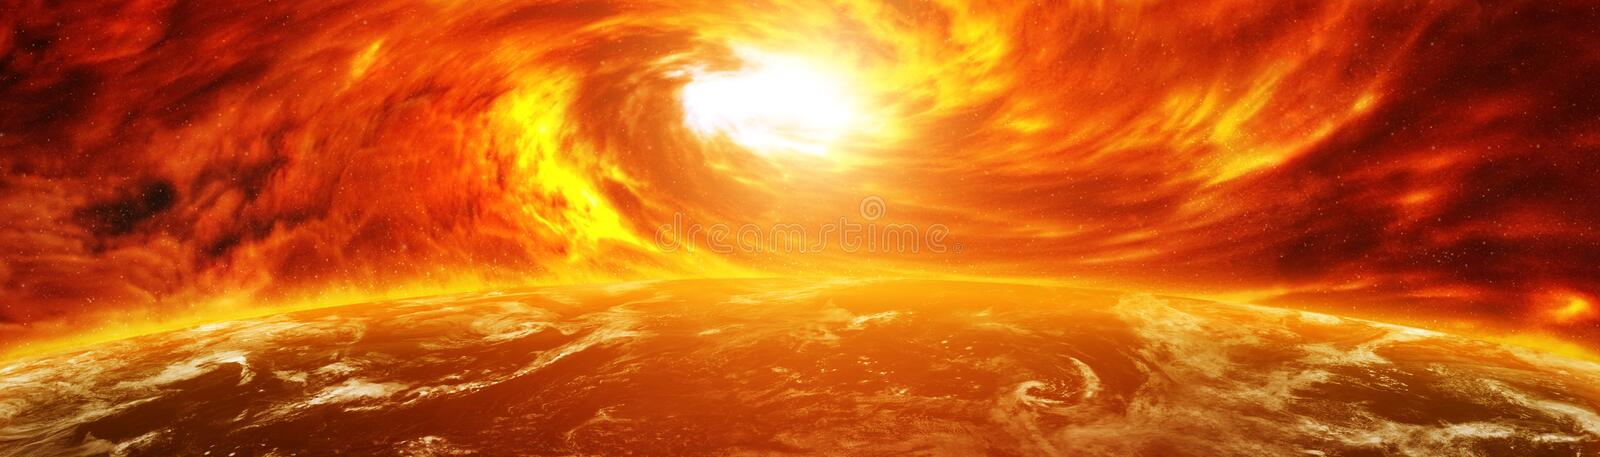 Exploding close to planet Earth 3D rendering elements of this image furnished by NASA royalty free illustration